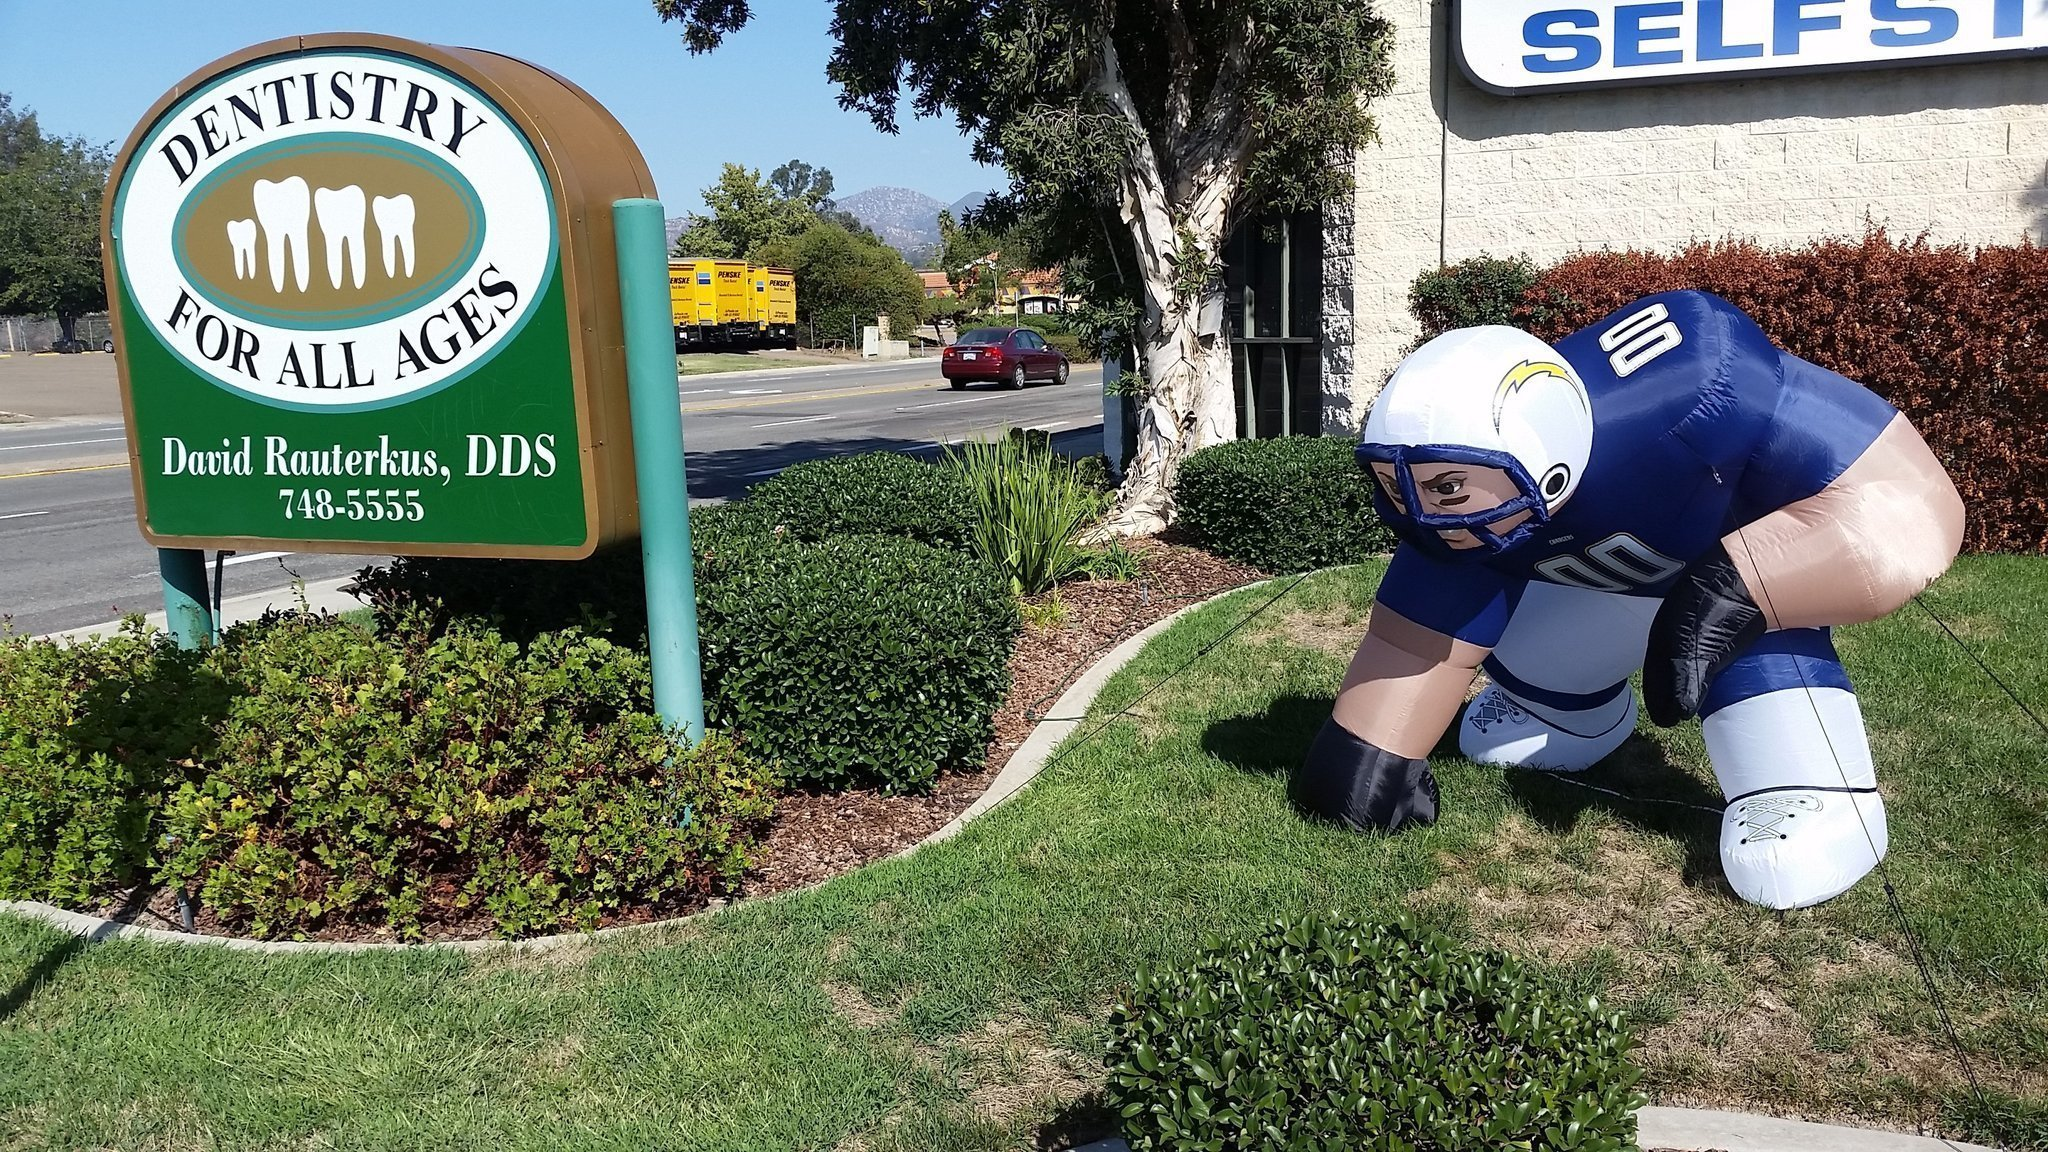 Inflatable Charger Quot Bubba Quot Stolen In Poway The San